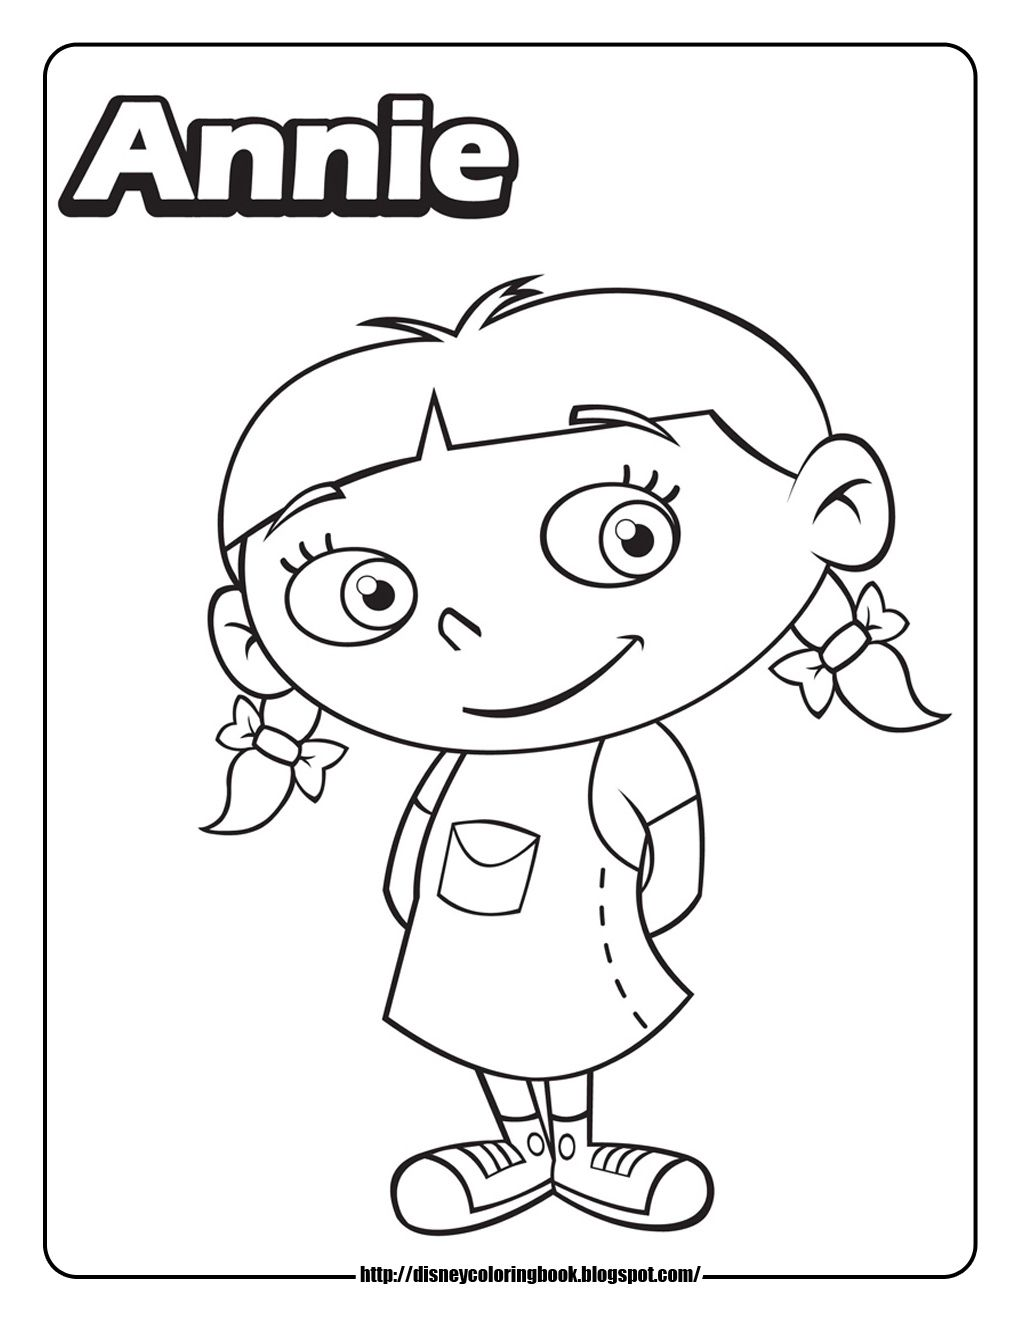 little einsteins coloring pages annie | coloring pages | Pinterest ...